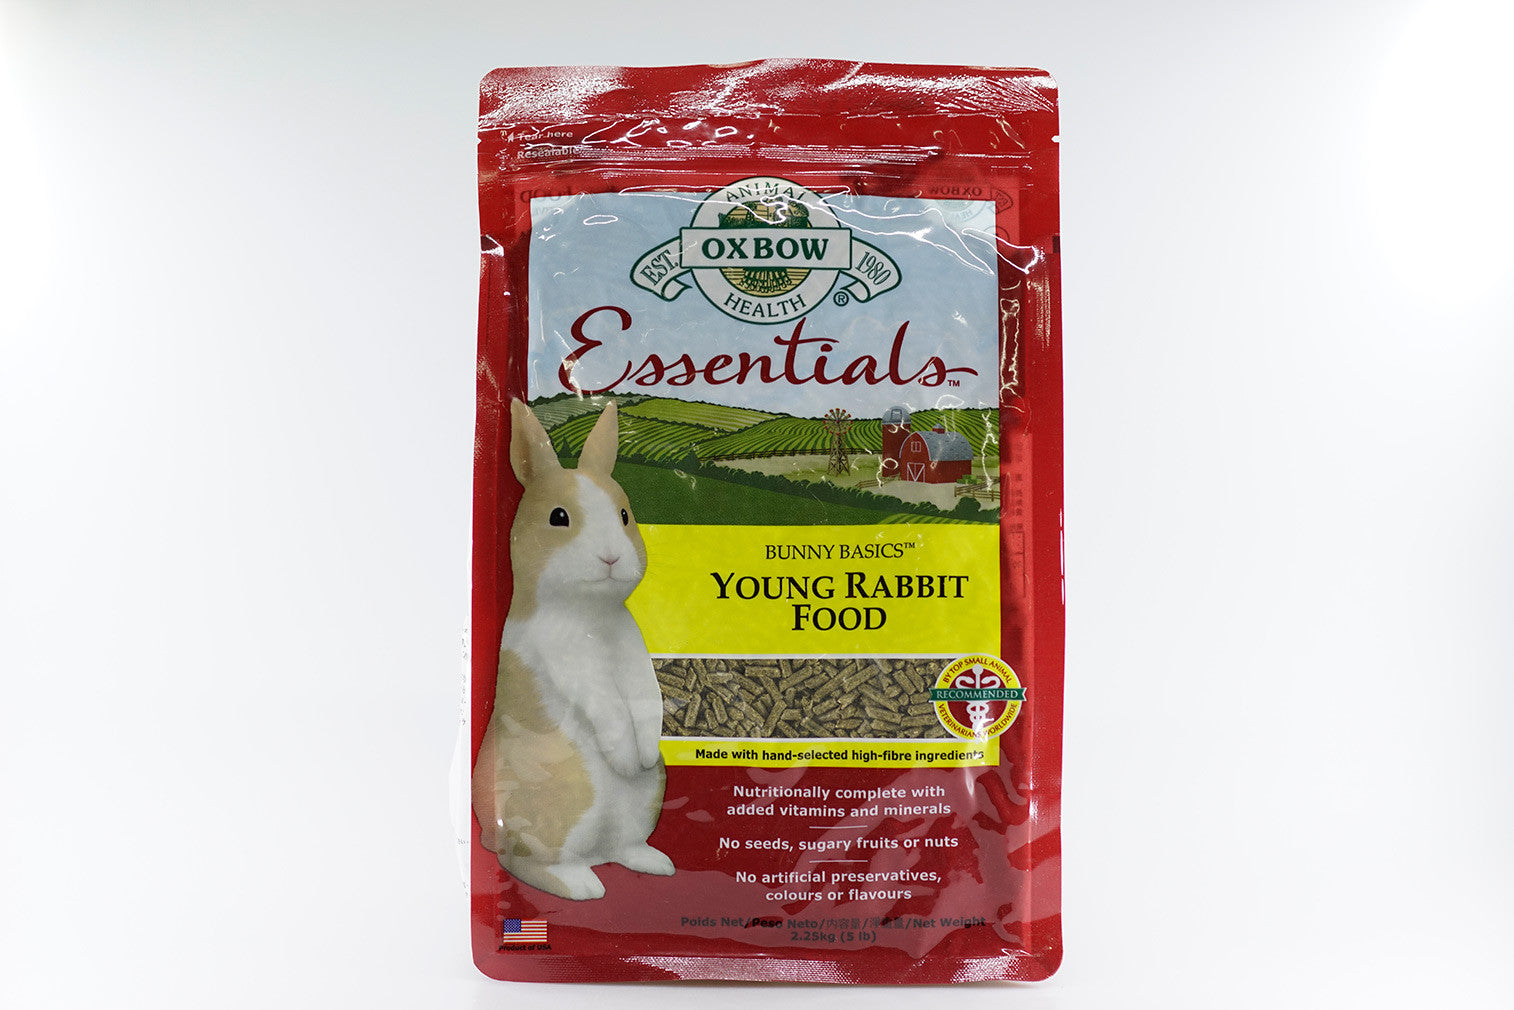 Oxbow Essentials Young Rabbit Food 2.25kg